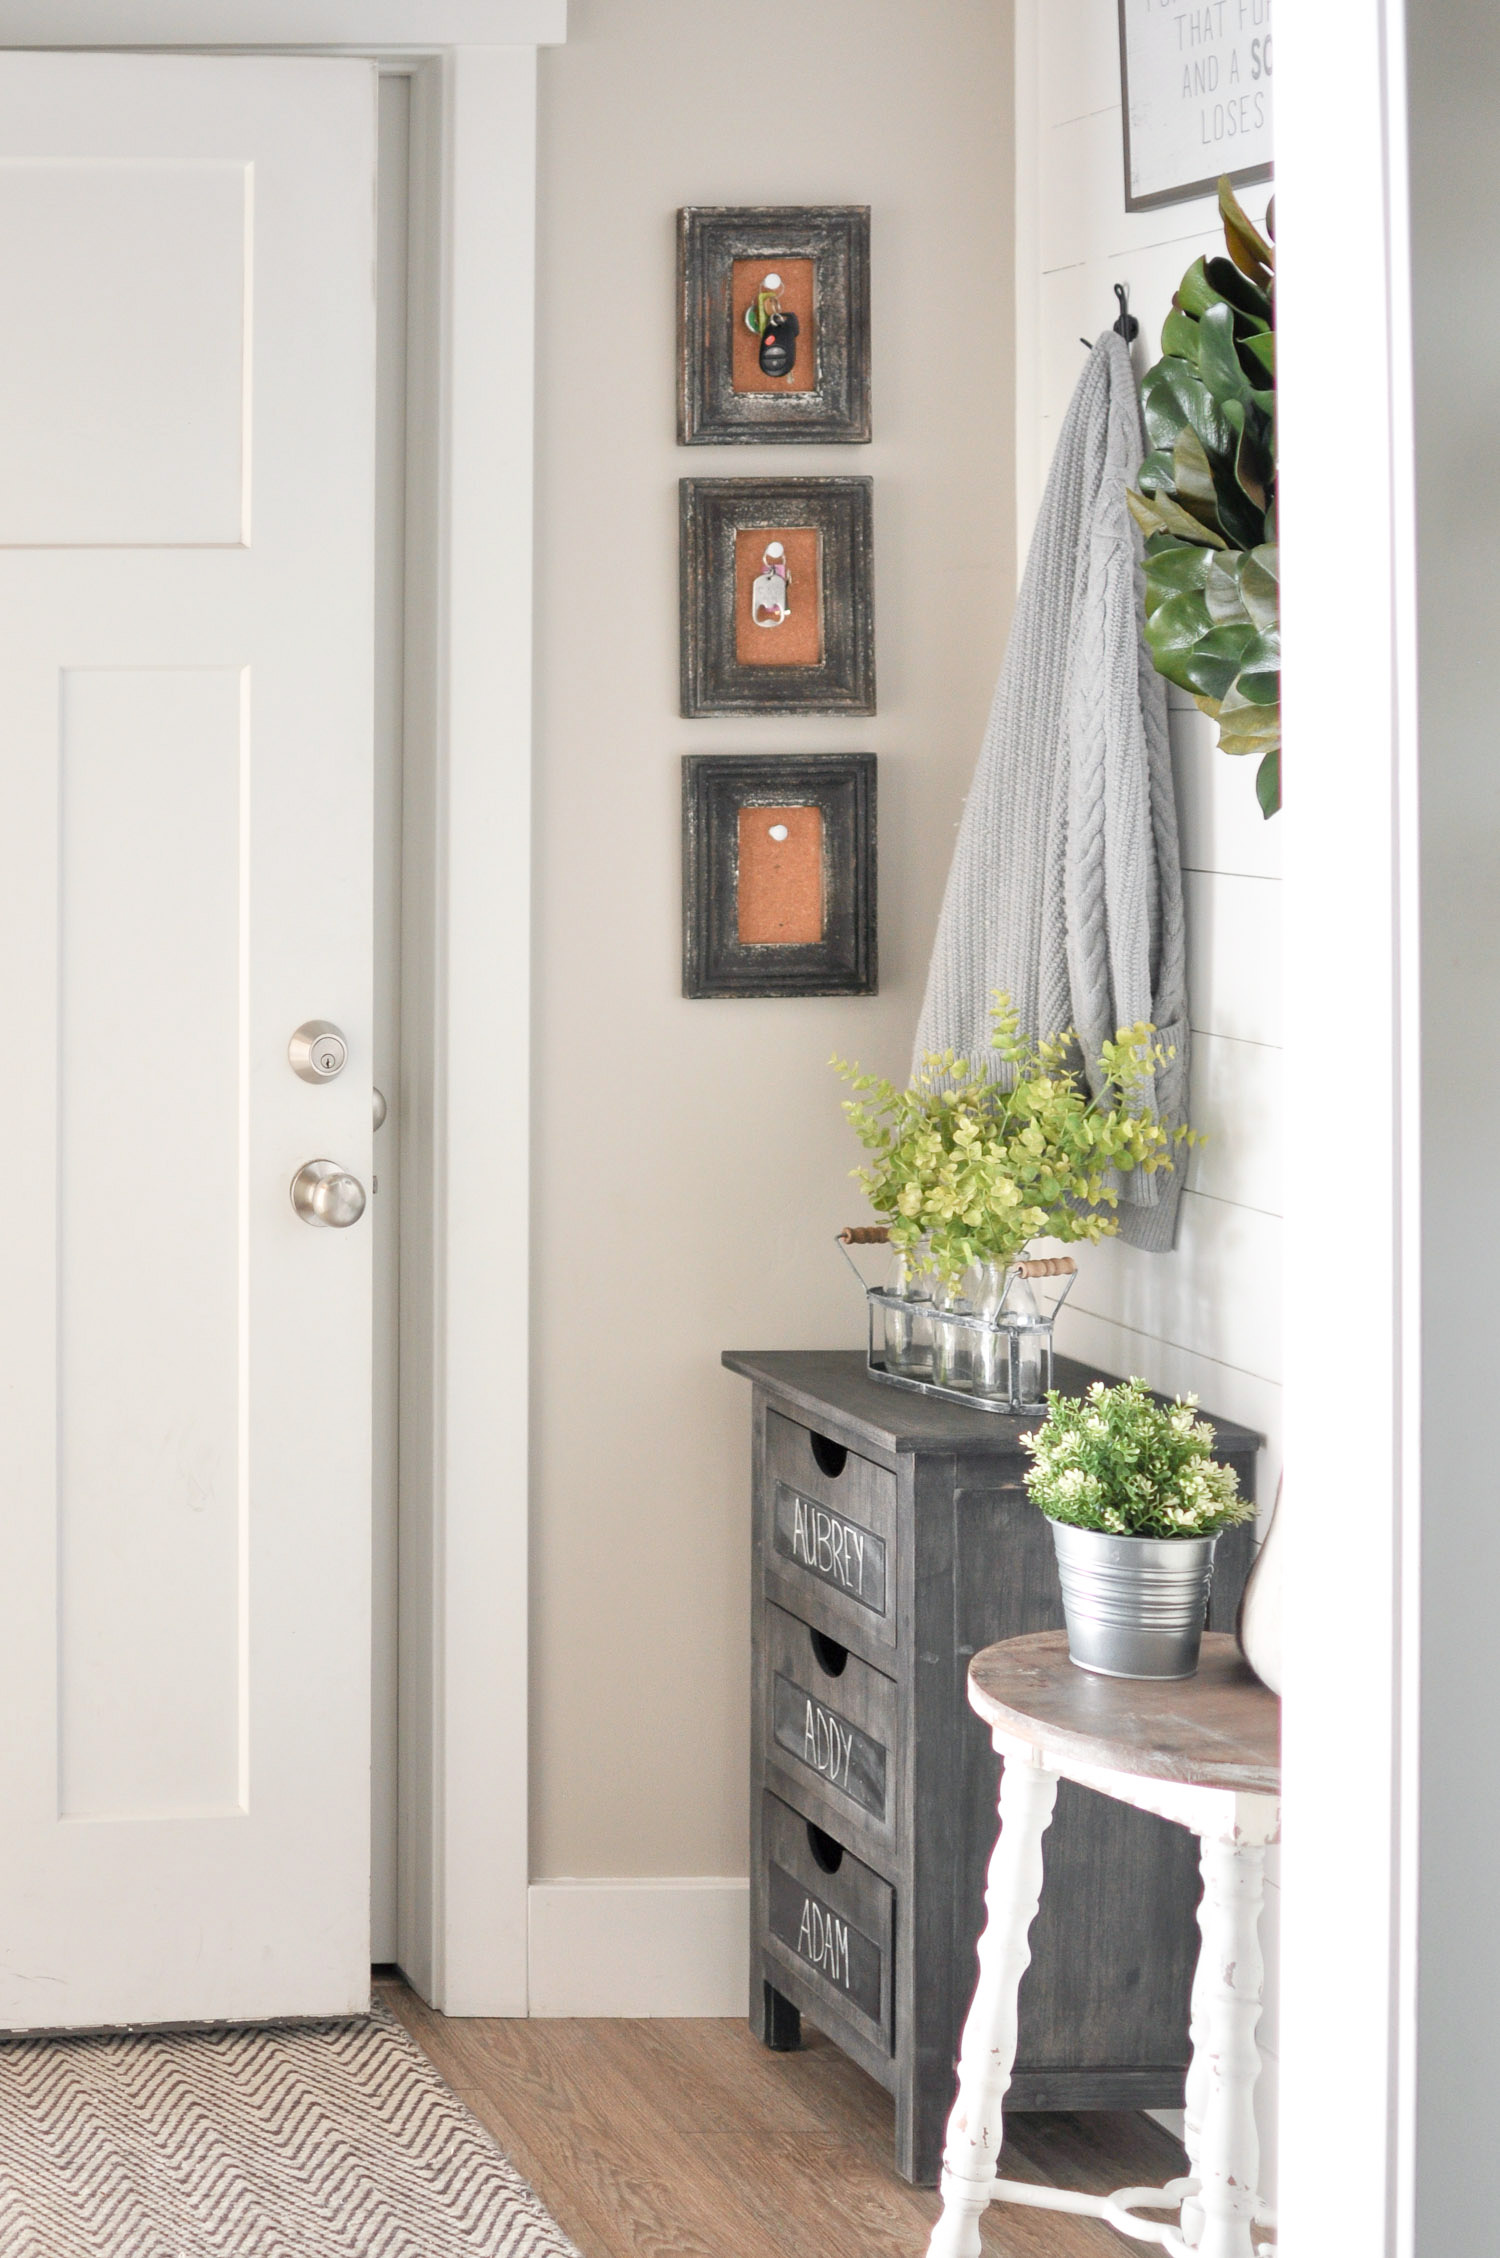 25  Real life Mudroom and Entryway Decorating Ideas by Bloggers Small Mudroom Makeover Idea by Cherished Bliss